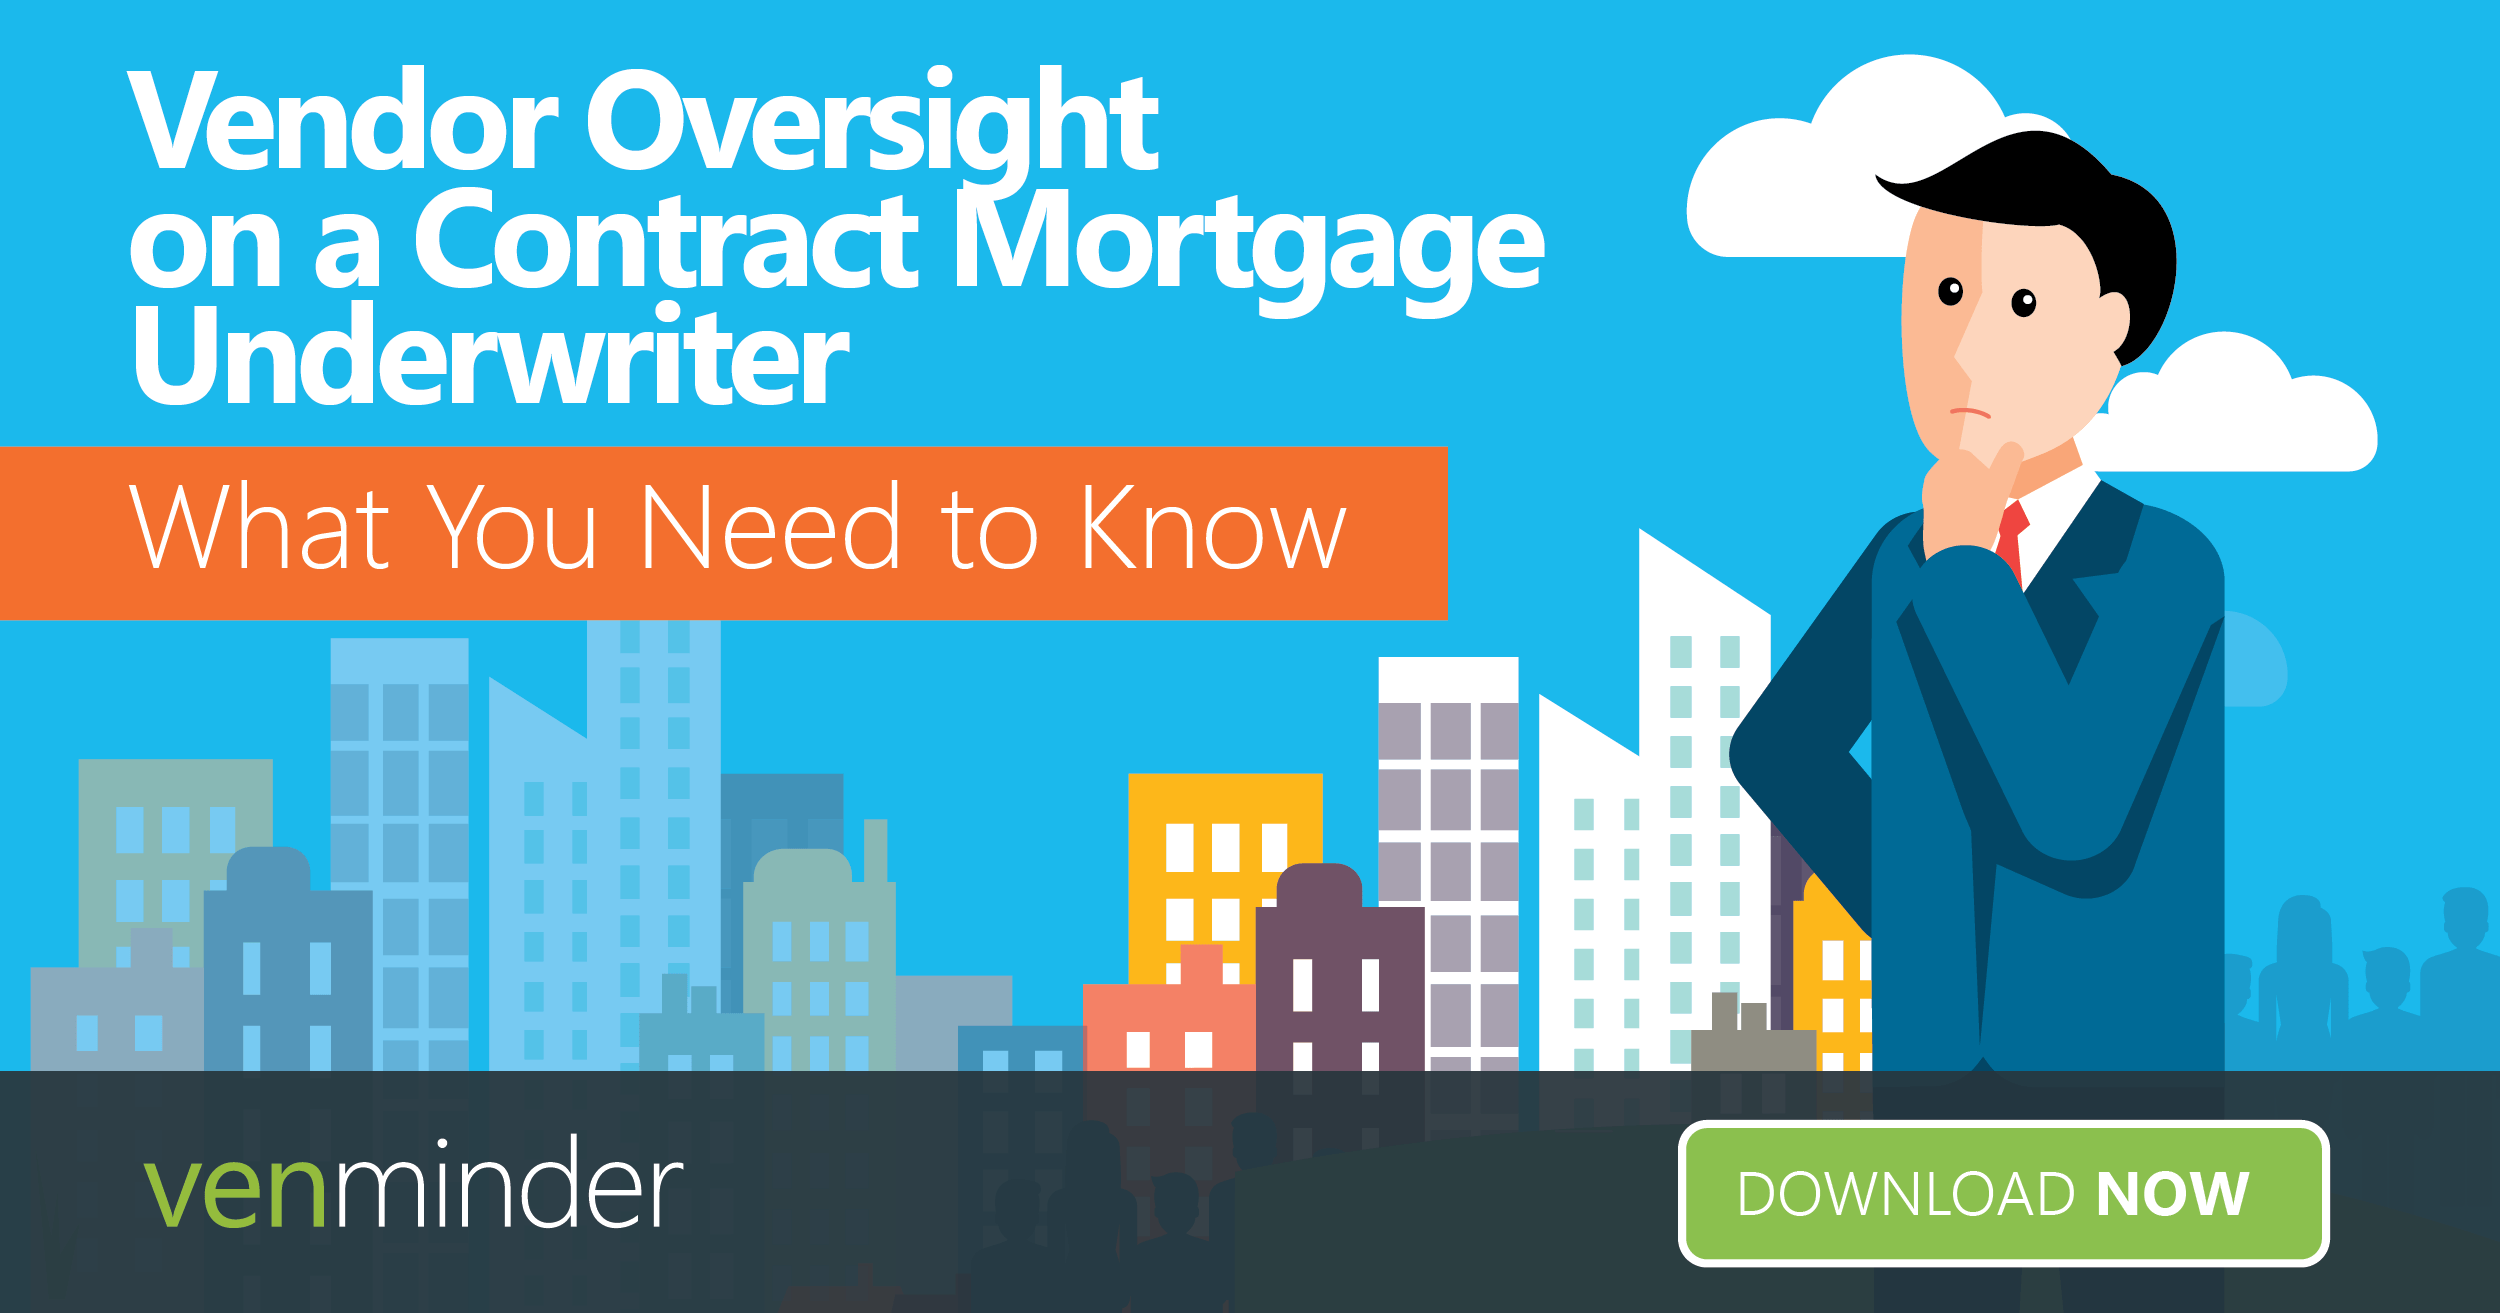 Vendor Oversight on Contract Mortgage Underwriter